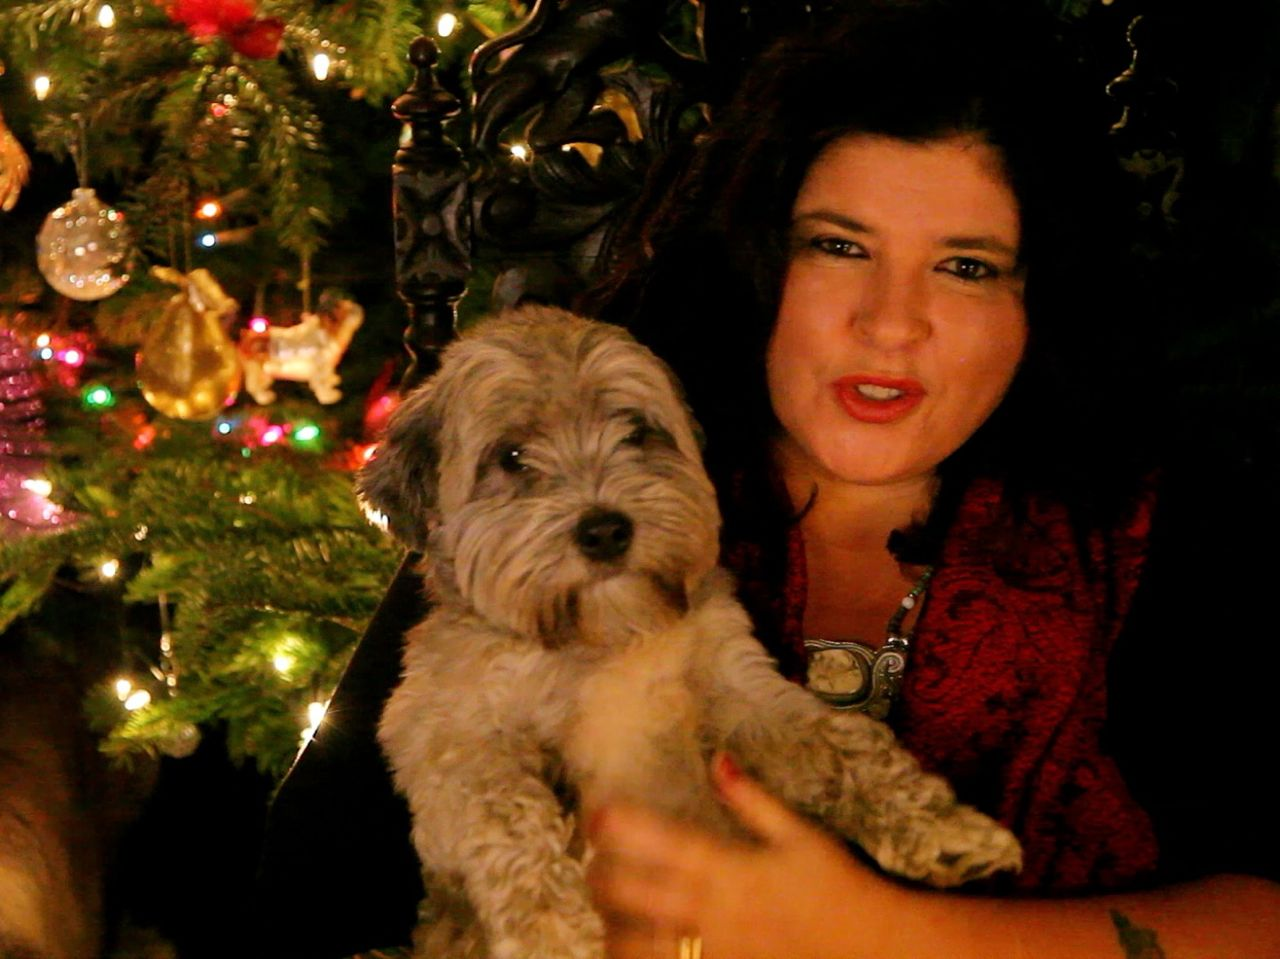 Xmas psychic and astrology reading